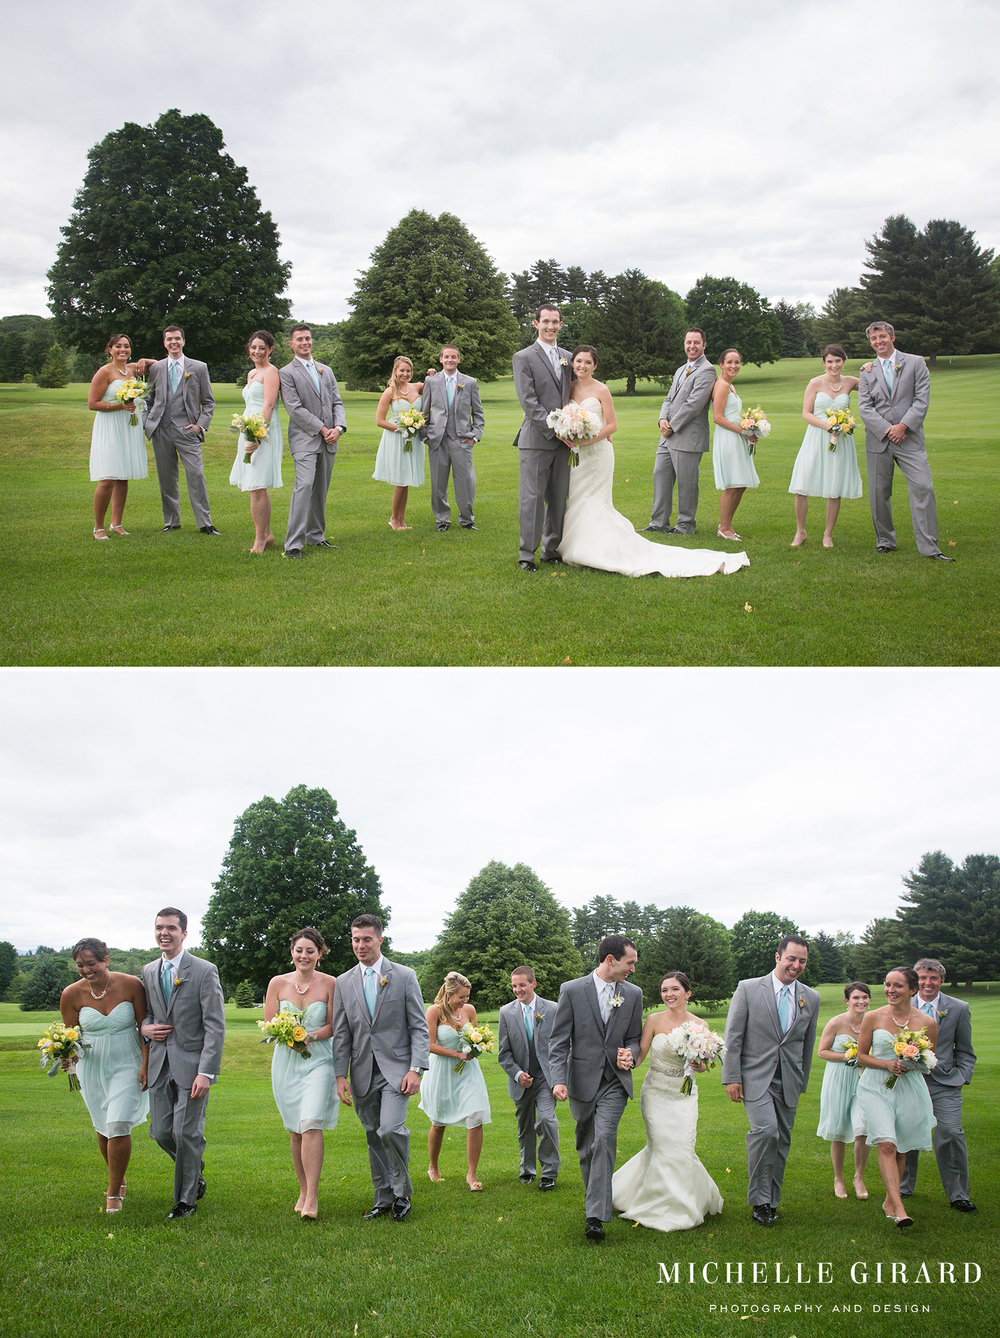 CountryClubofPittsfield_SummerWedding_BerkshireCounty_MichelleGirardPhotography_17.jpg